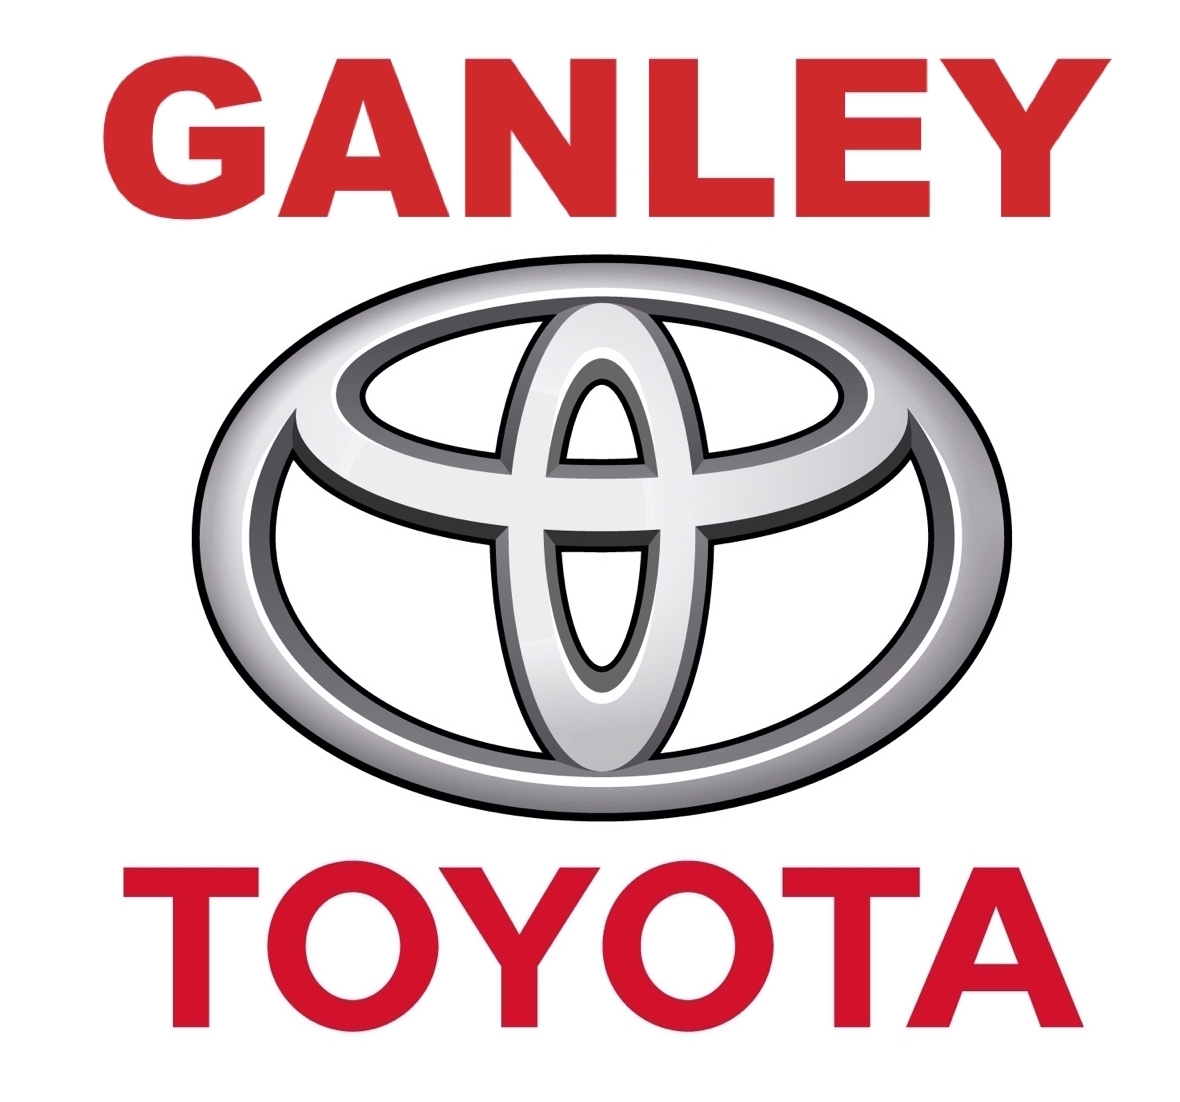 Ganley toyota akron oh read consumer reviews browse for Ganley mercedes benz akron oh